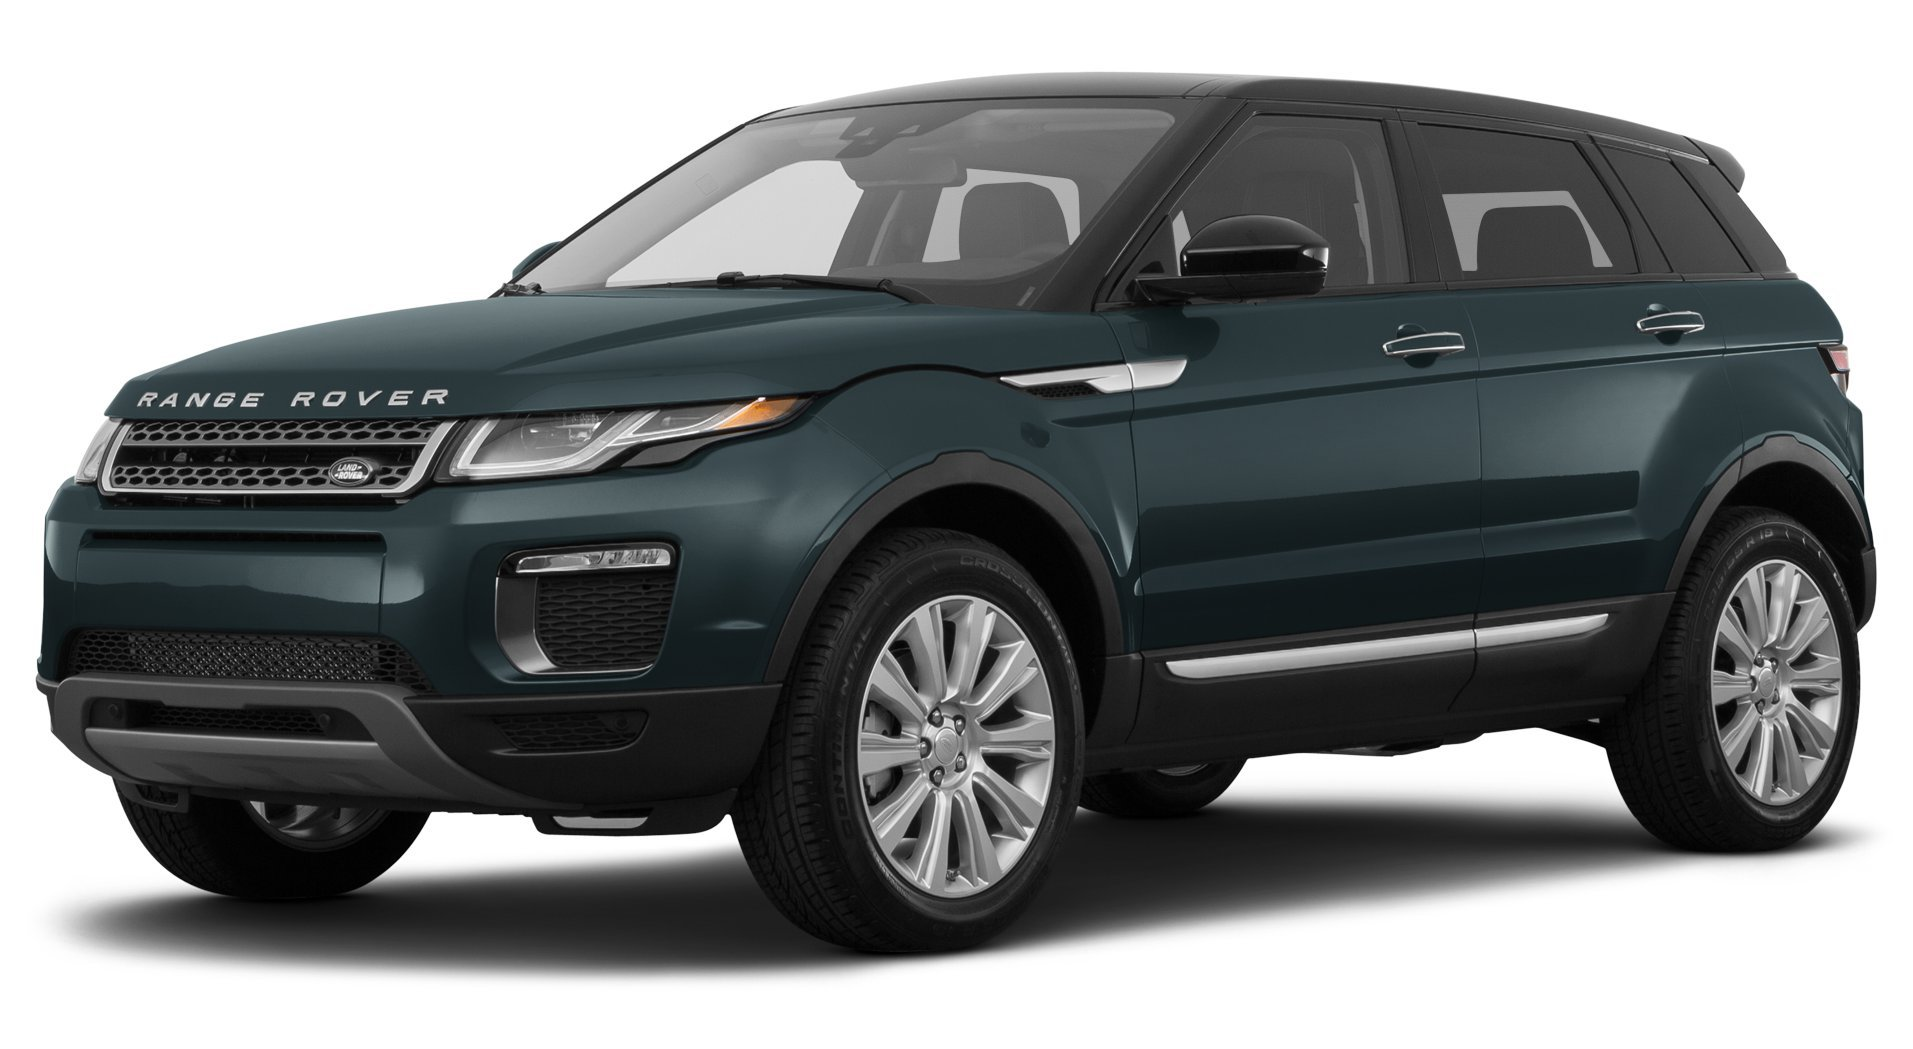 2017 land rover range rover evoque reviews images and specs vehicles. Black Bedroom Furniture Sets. Home Design Ideas